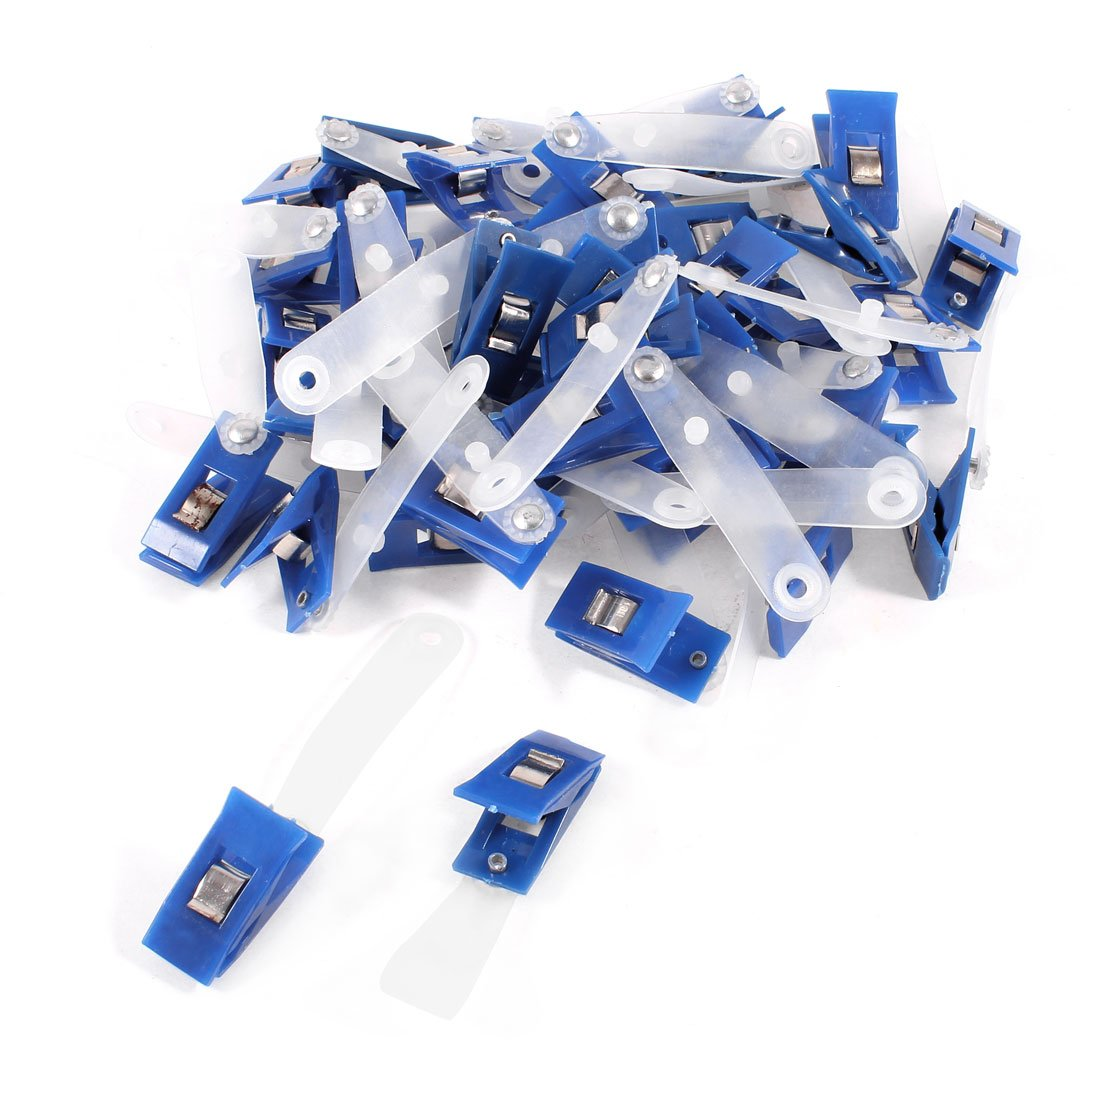 Affordable 40 Pcs Plastic ID Card Holder Name Badge Clips Fastener Blue